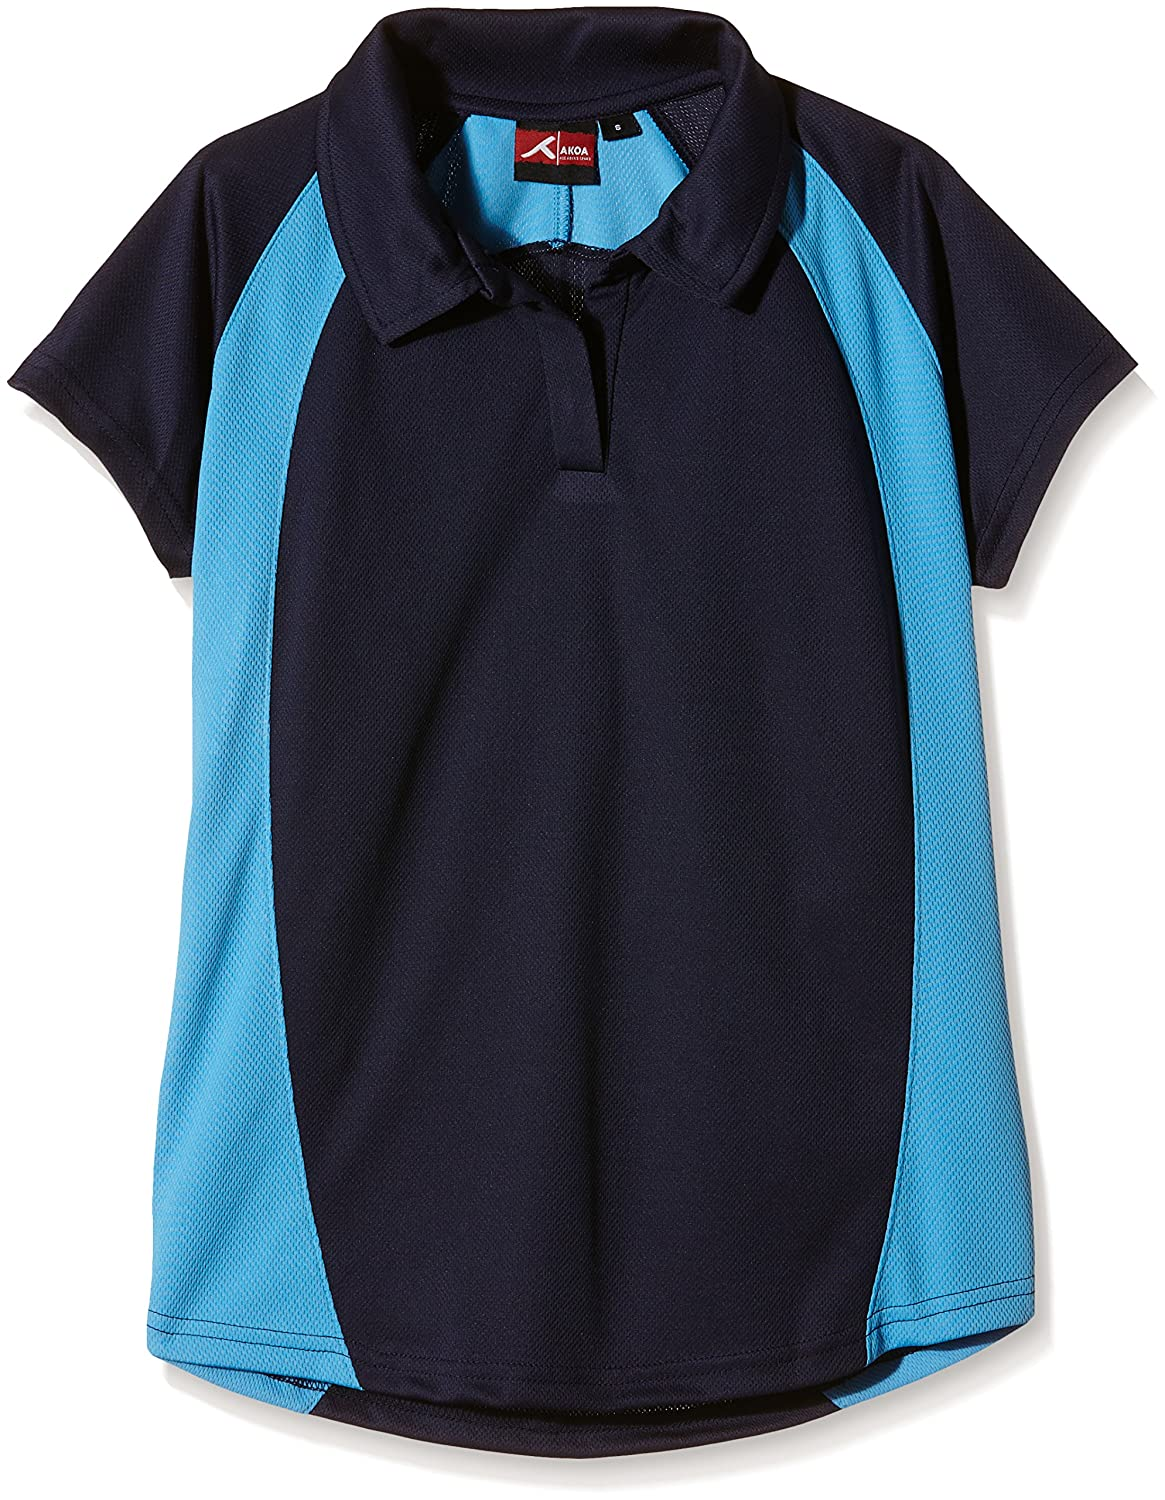 Trutex Girls Sector Polo Shirt